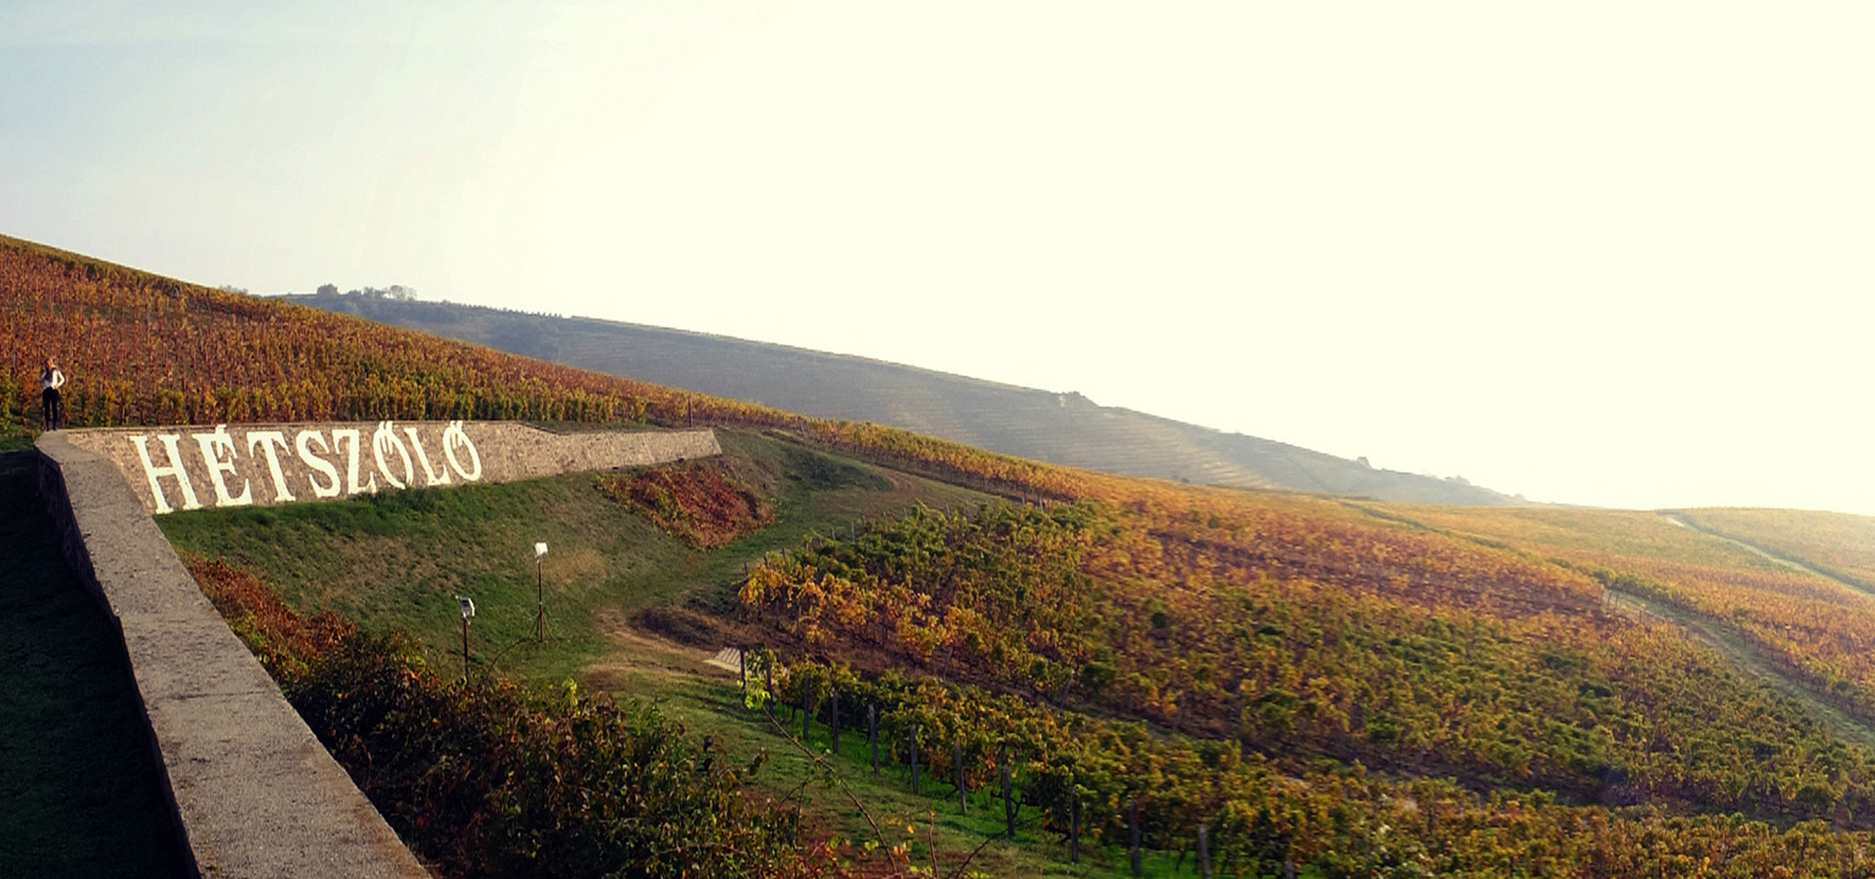 Tokaj Hétszölö, a Hungarian vineyard, has a history for Hungarian wines and exemplify the esteemed history of the estate and the pedigree of the region.